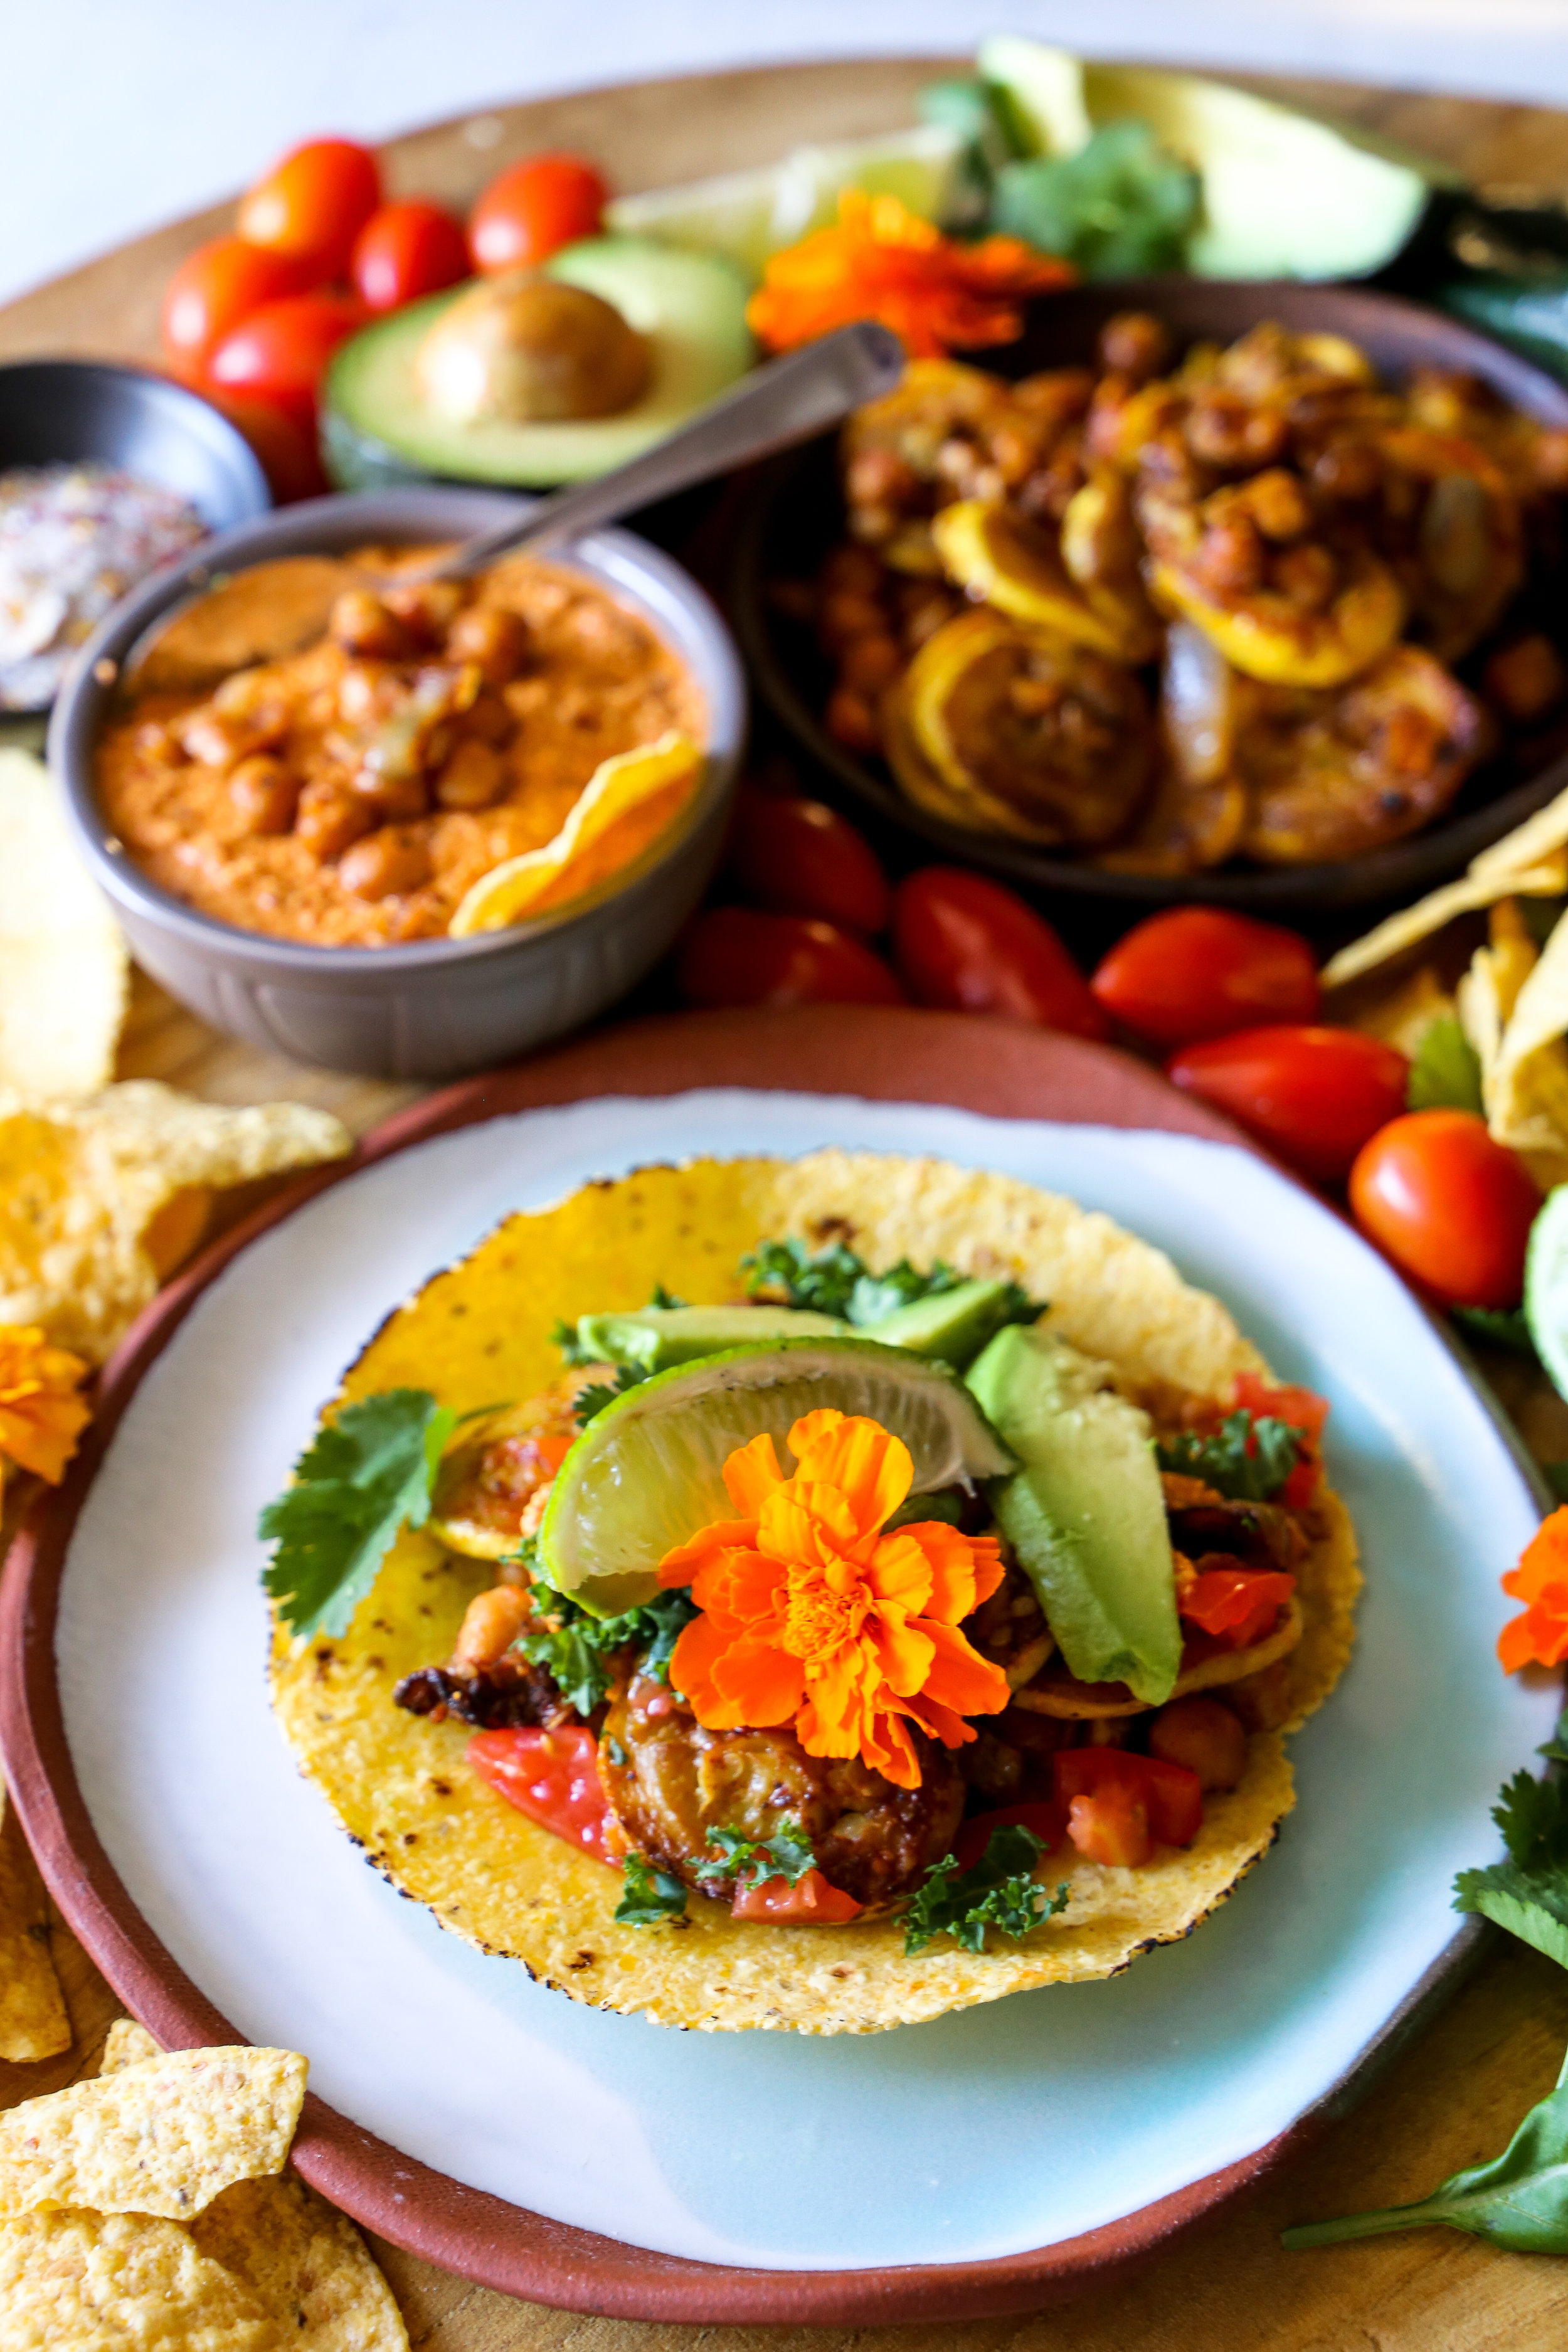 Smoked Veggie Tacos - Smoky vegetables in a spicy sauce make the perfect substitution.